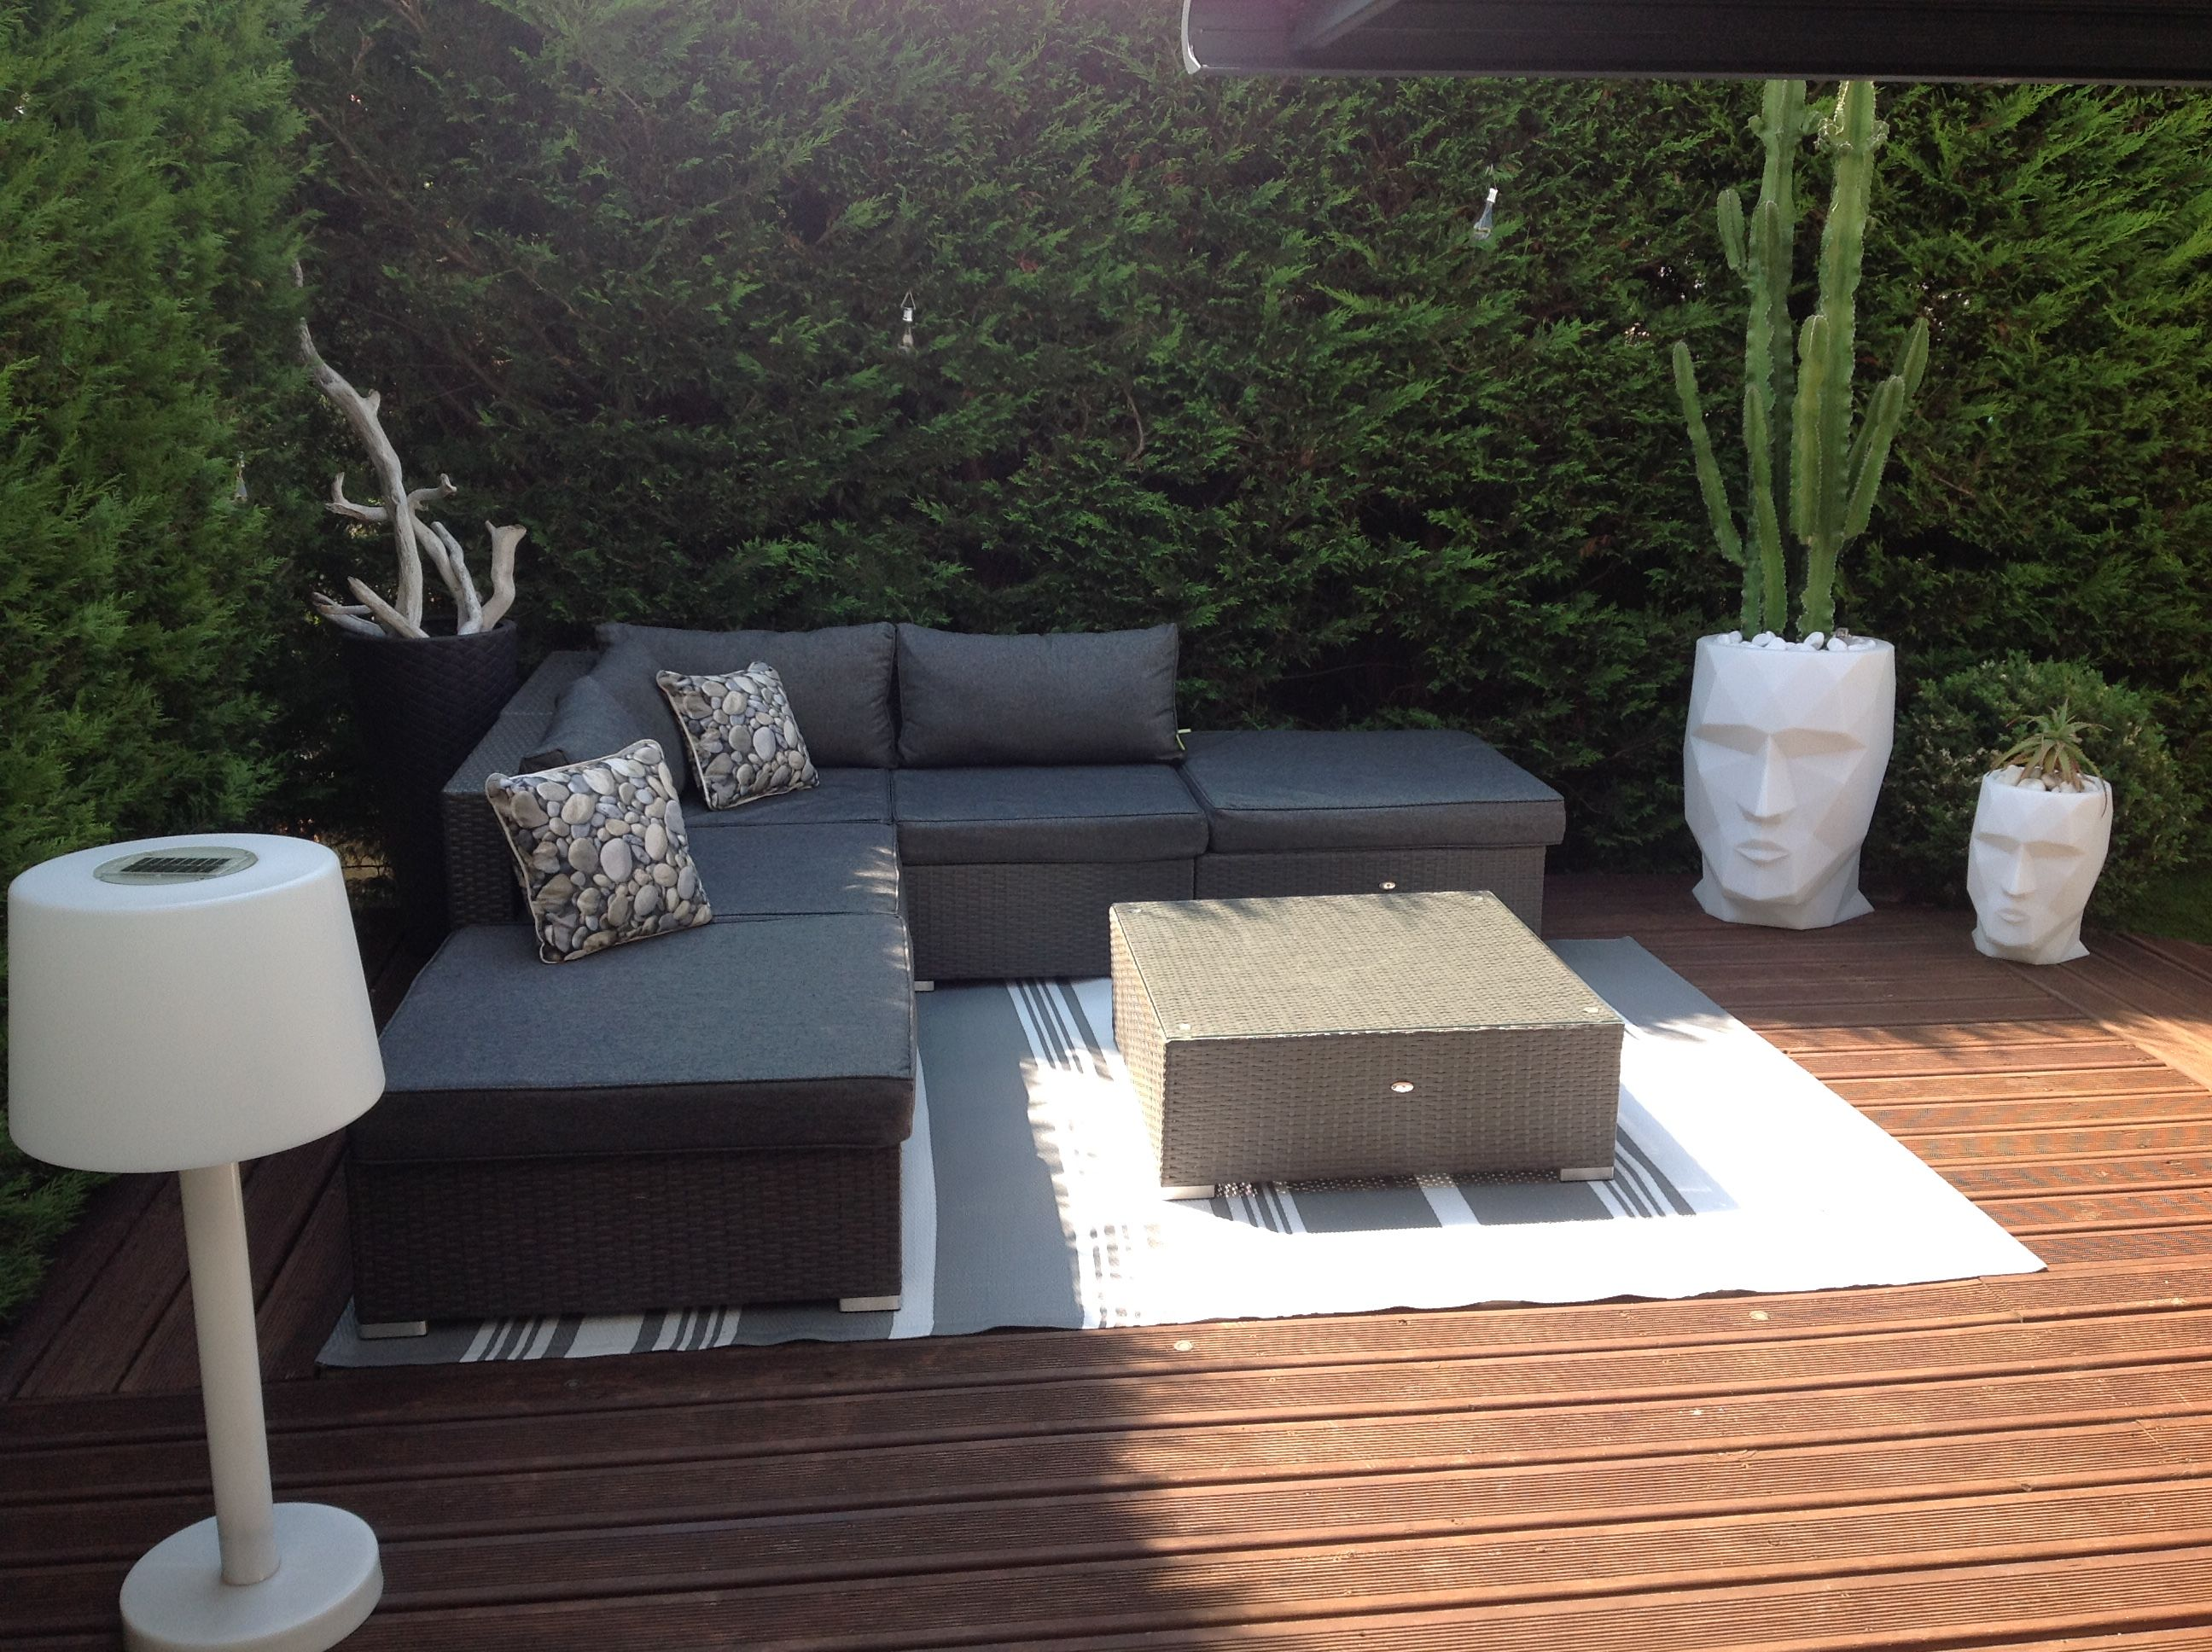 Milano salon de jardin 7 places en r sine tress e for Palette deco terrasse